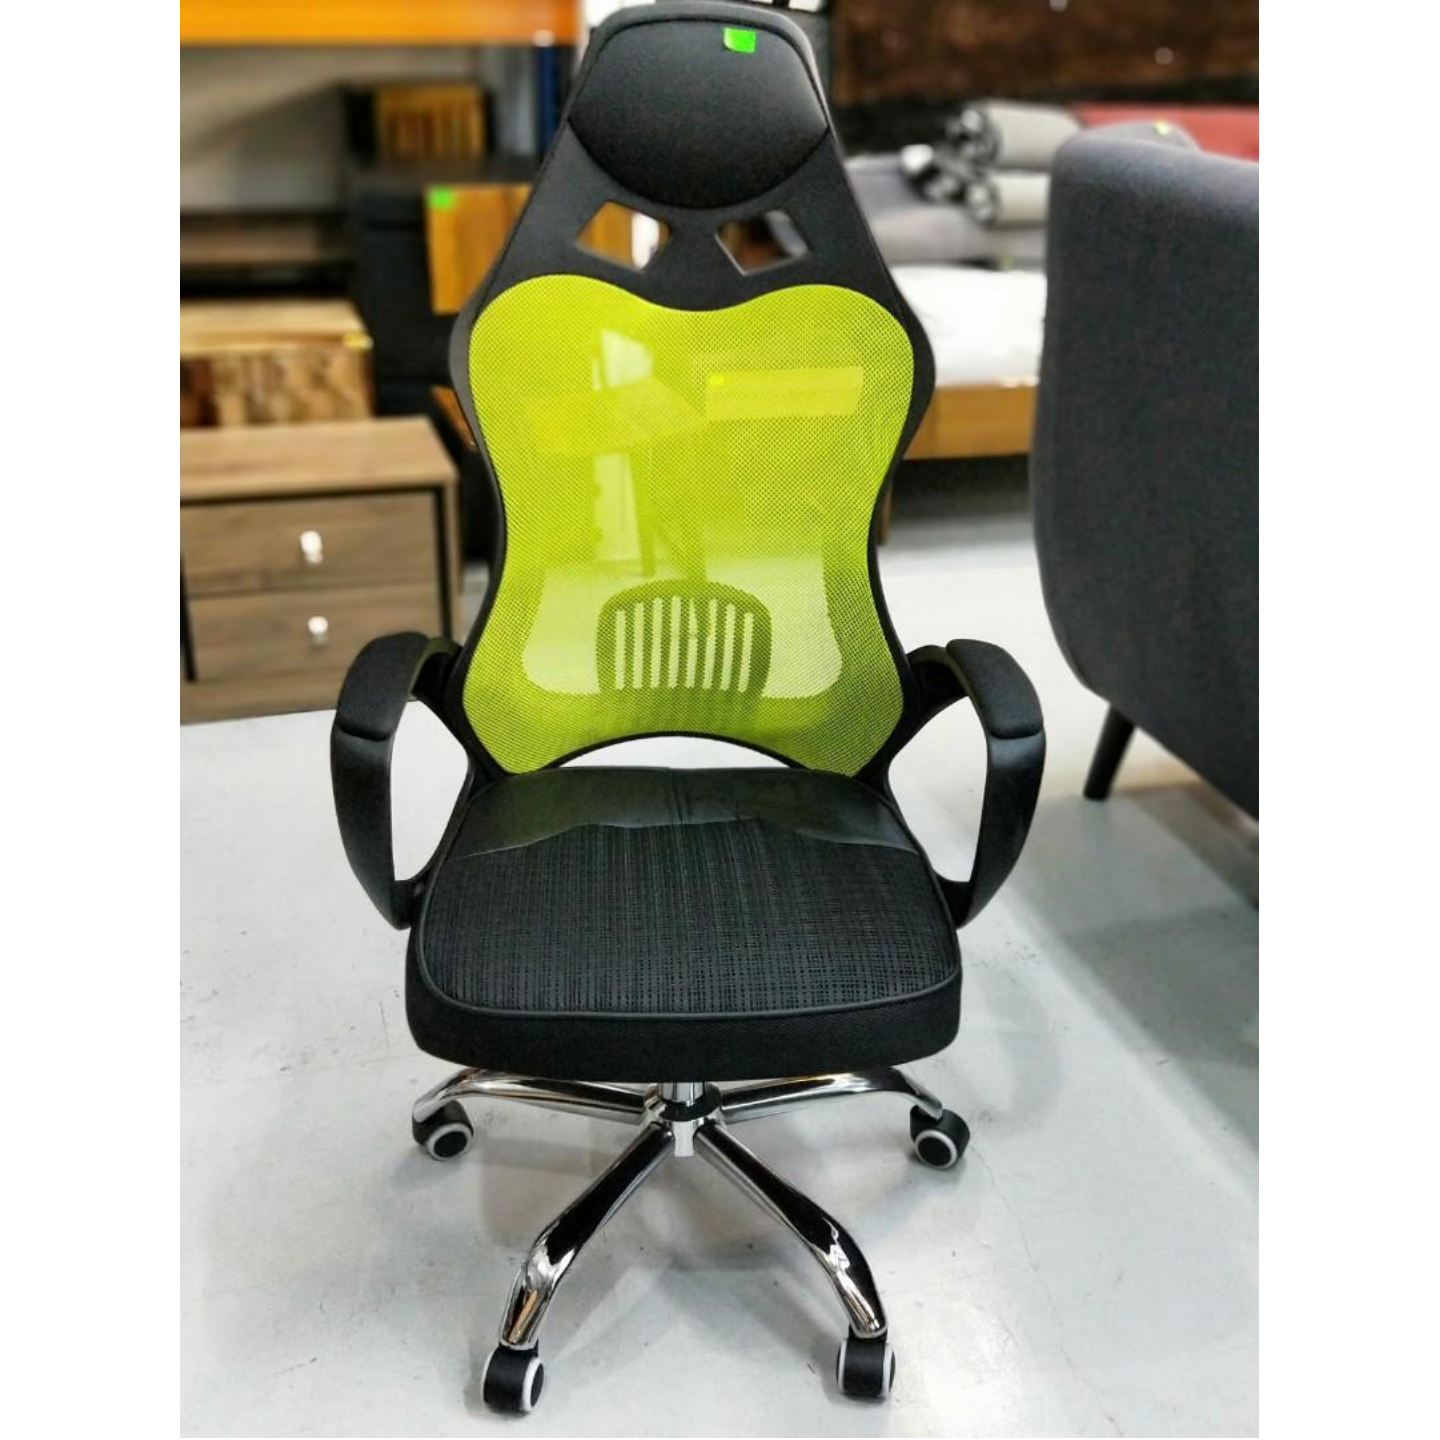 KARBON Racing Gaming Chair in BLACK & GREEN Mesh